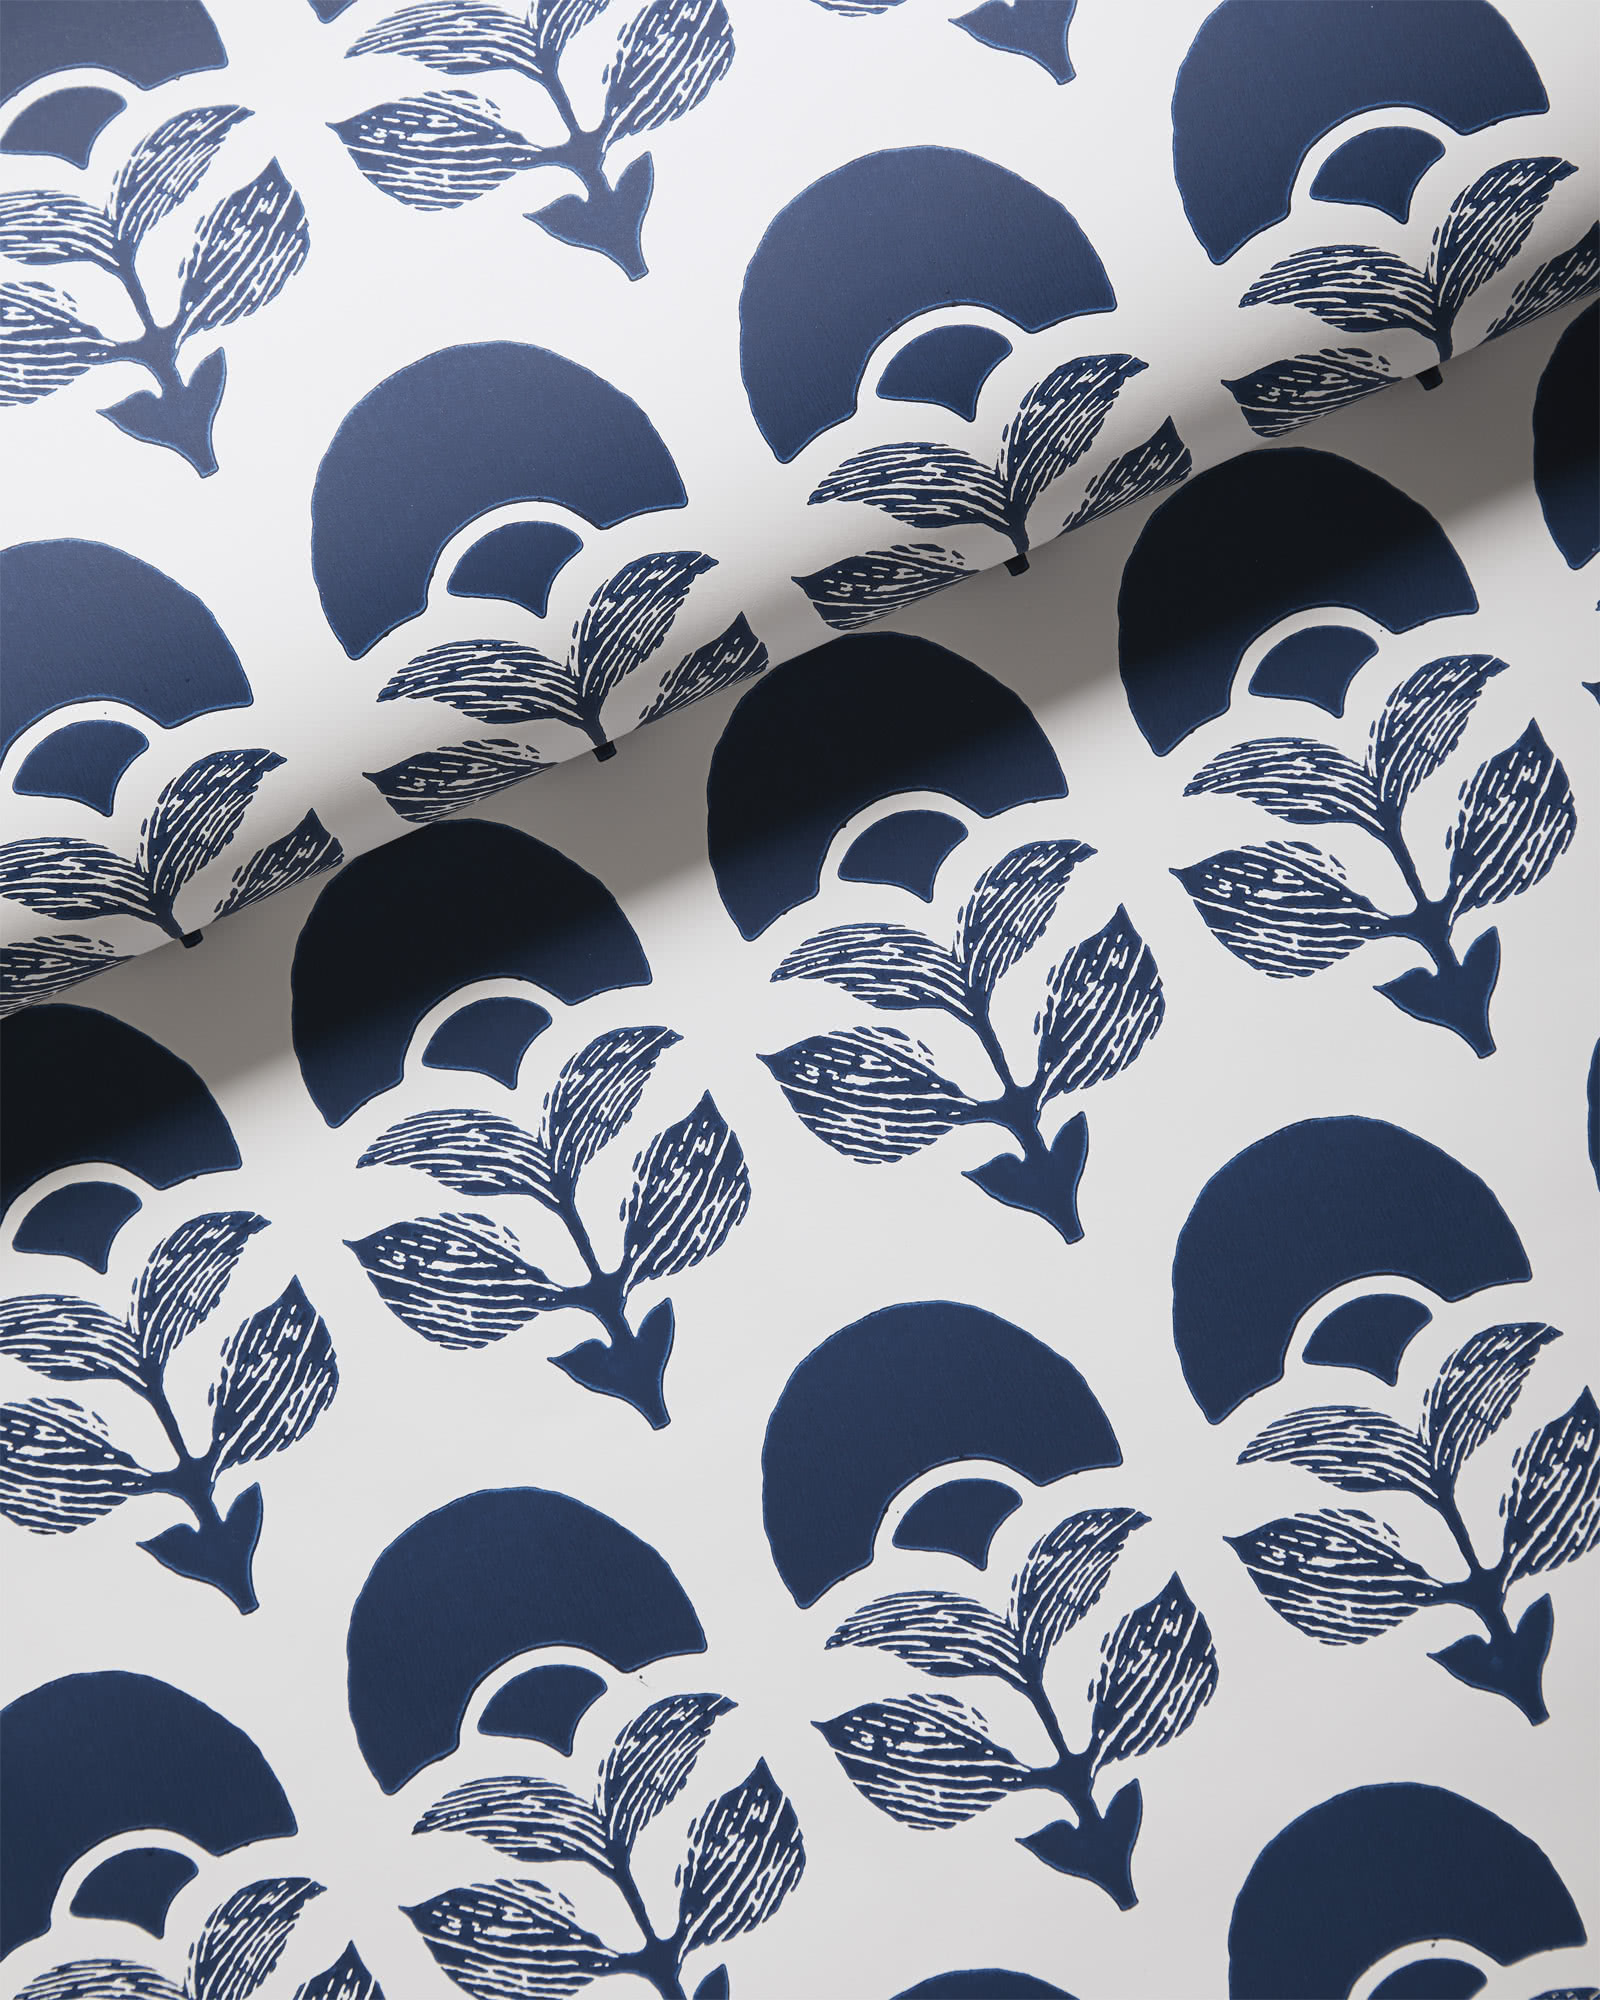 Larkspur Wallpaper, Midnight